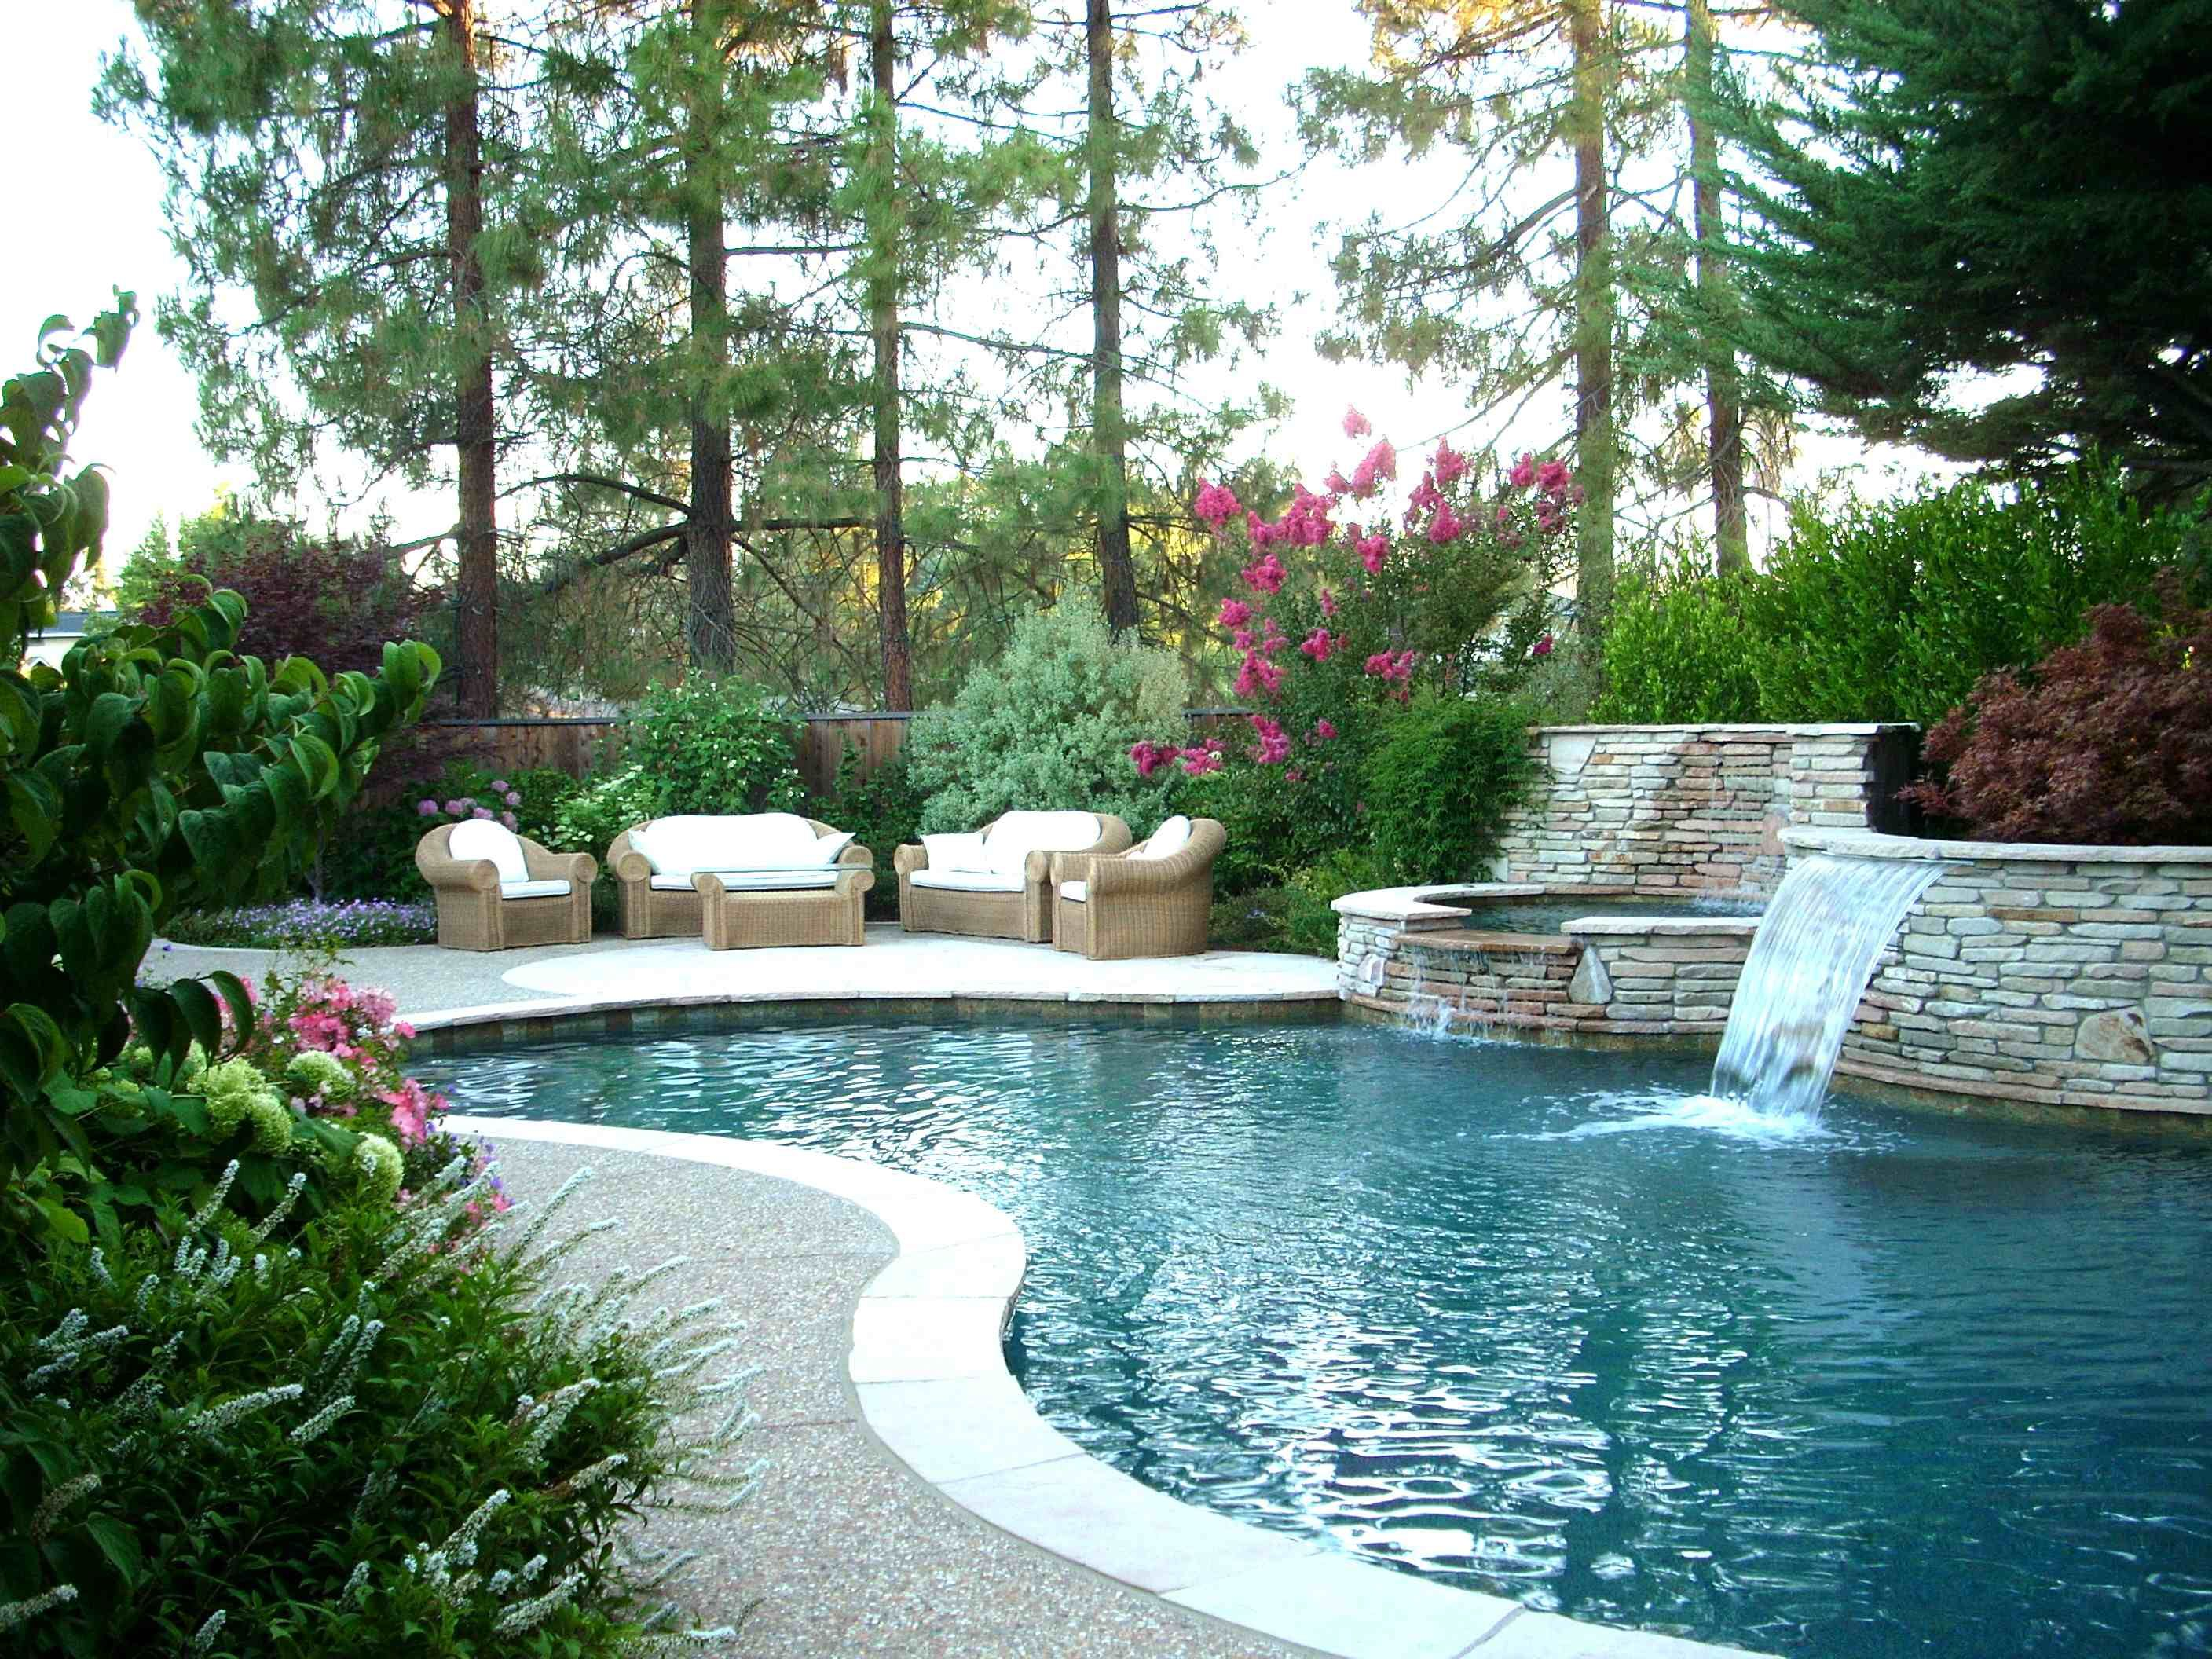 Landscaped pool pictures landscape design ideas for for Garden and landscaping ideas